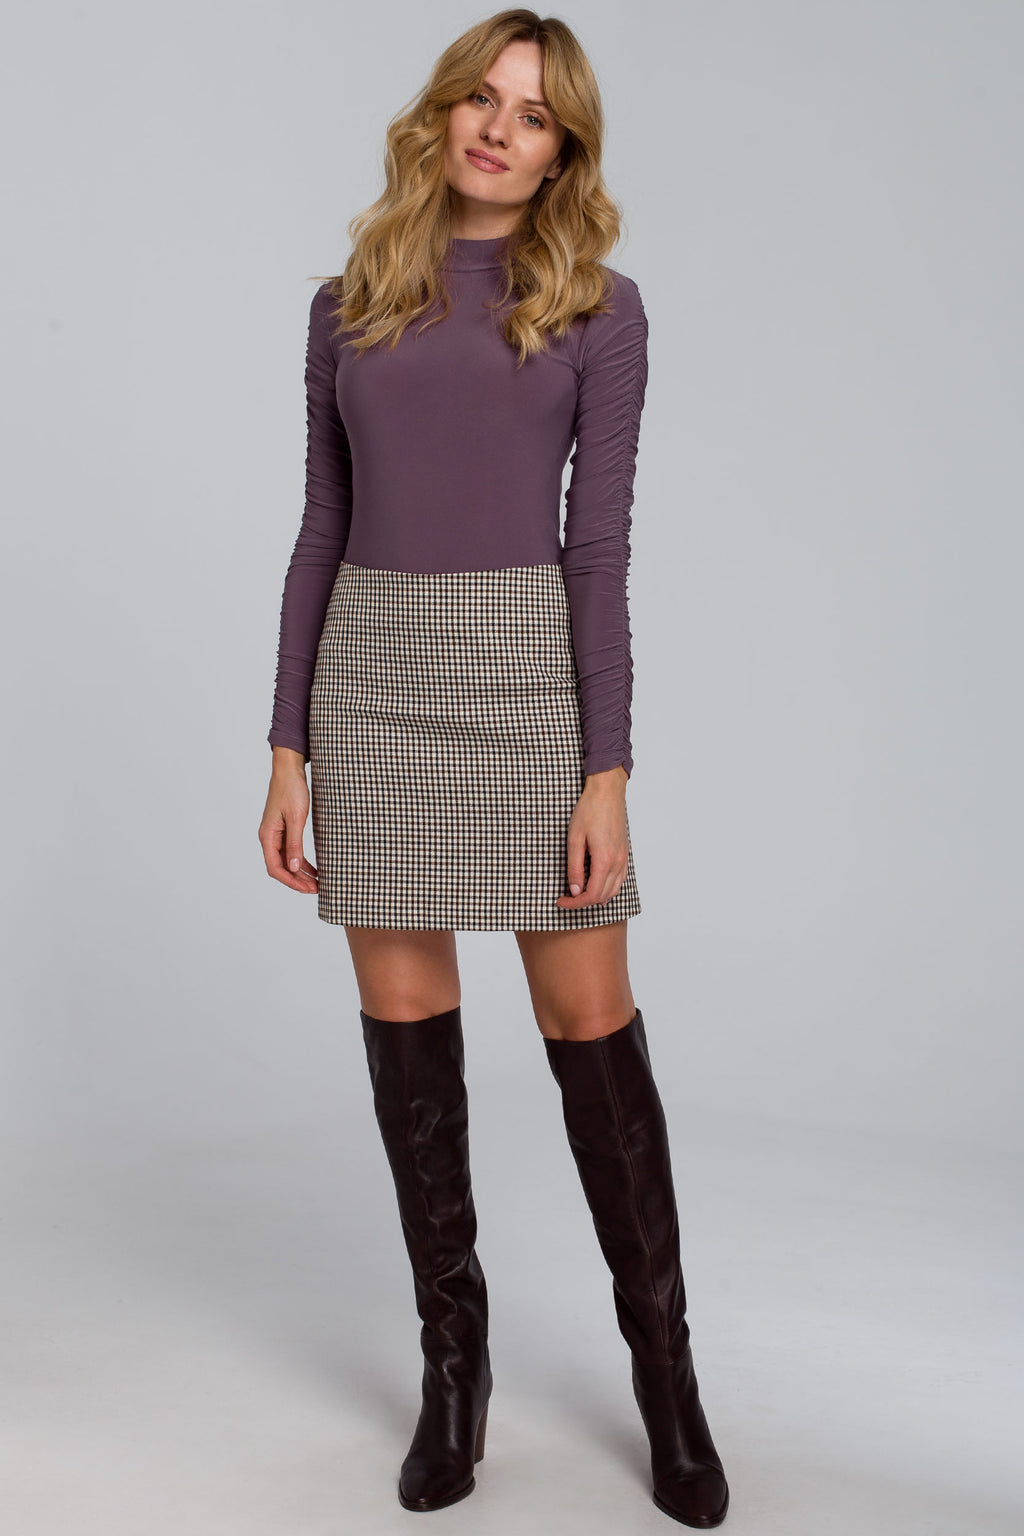 Purple Body With Gathered Sleeves - So Chic Boutique